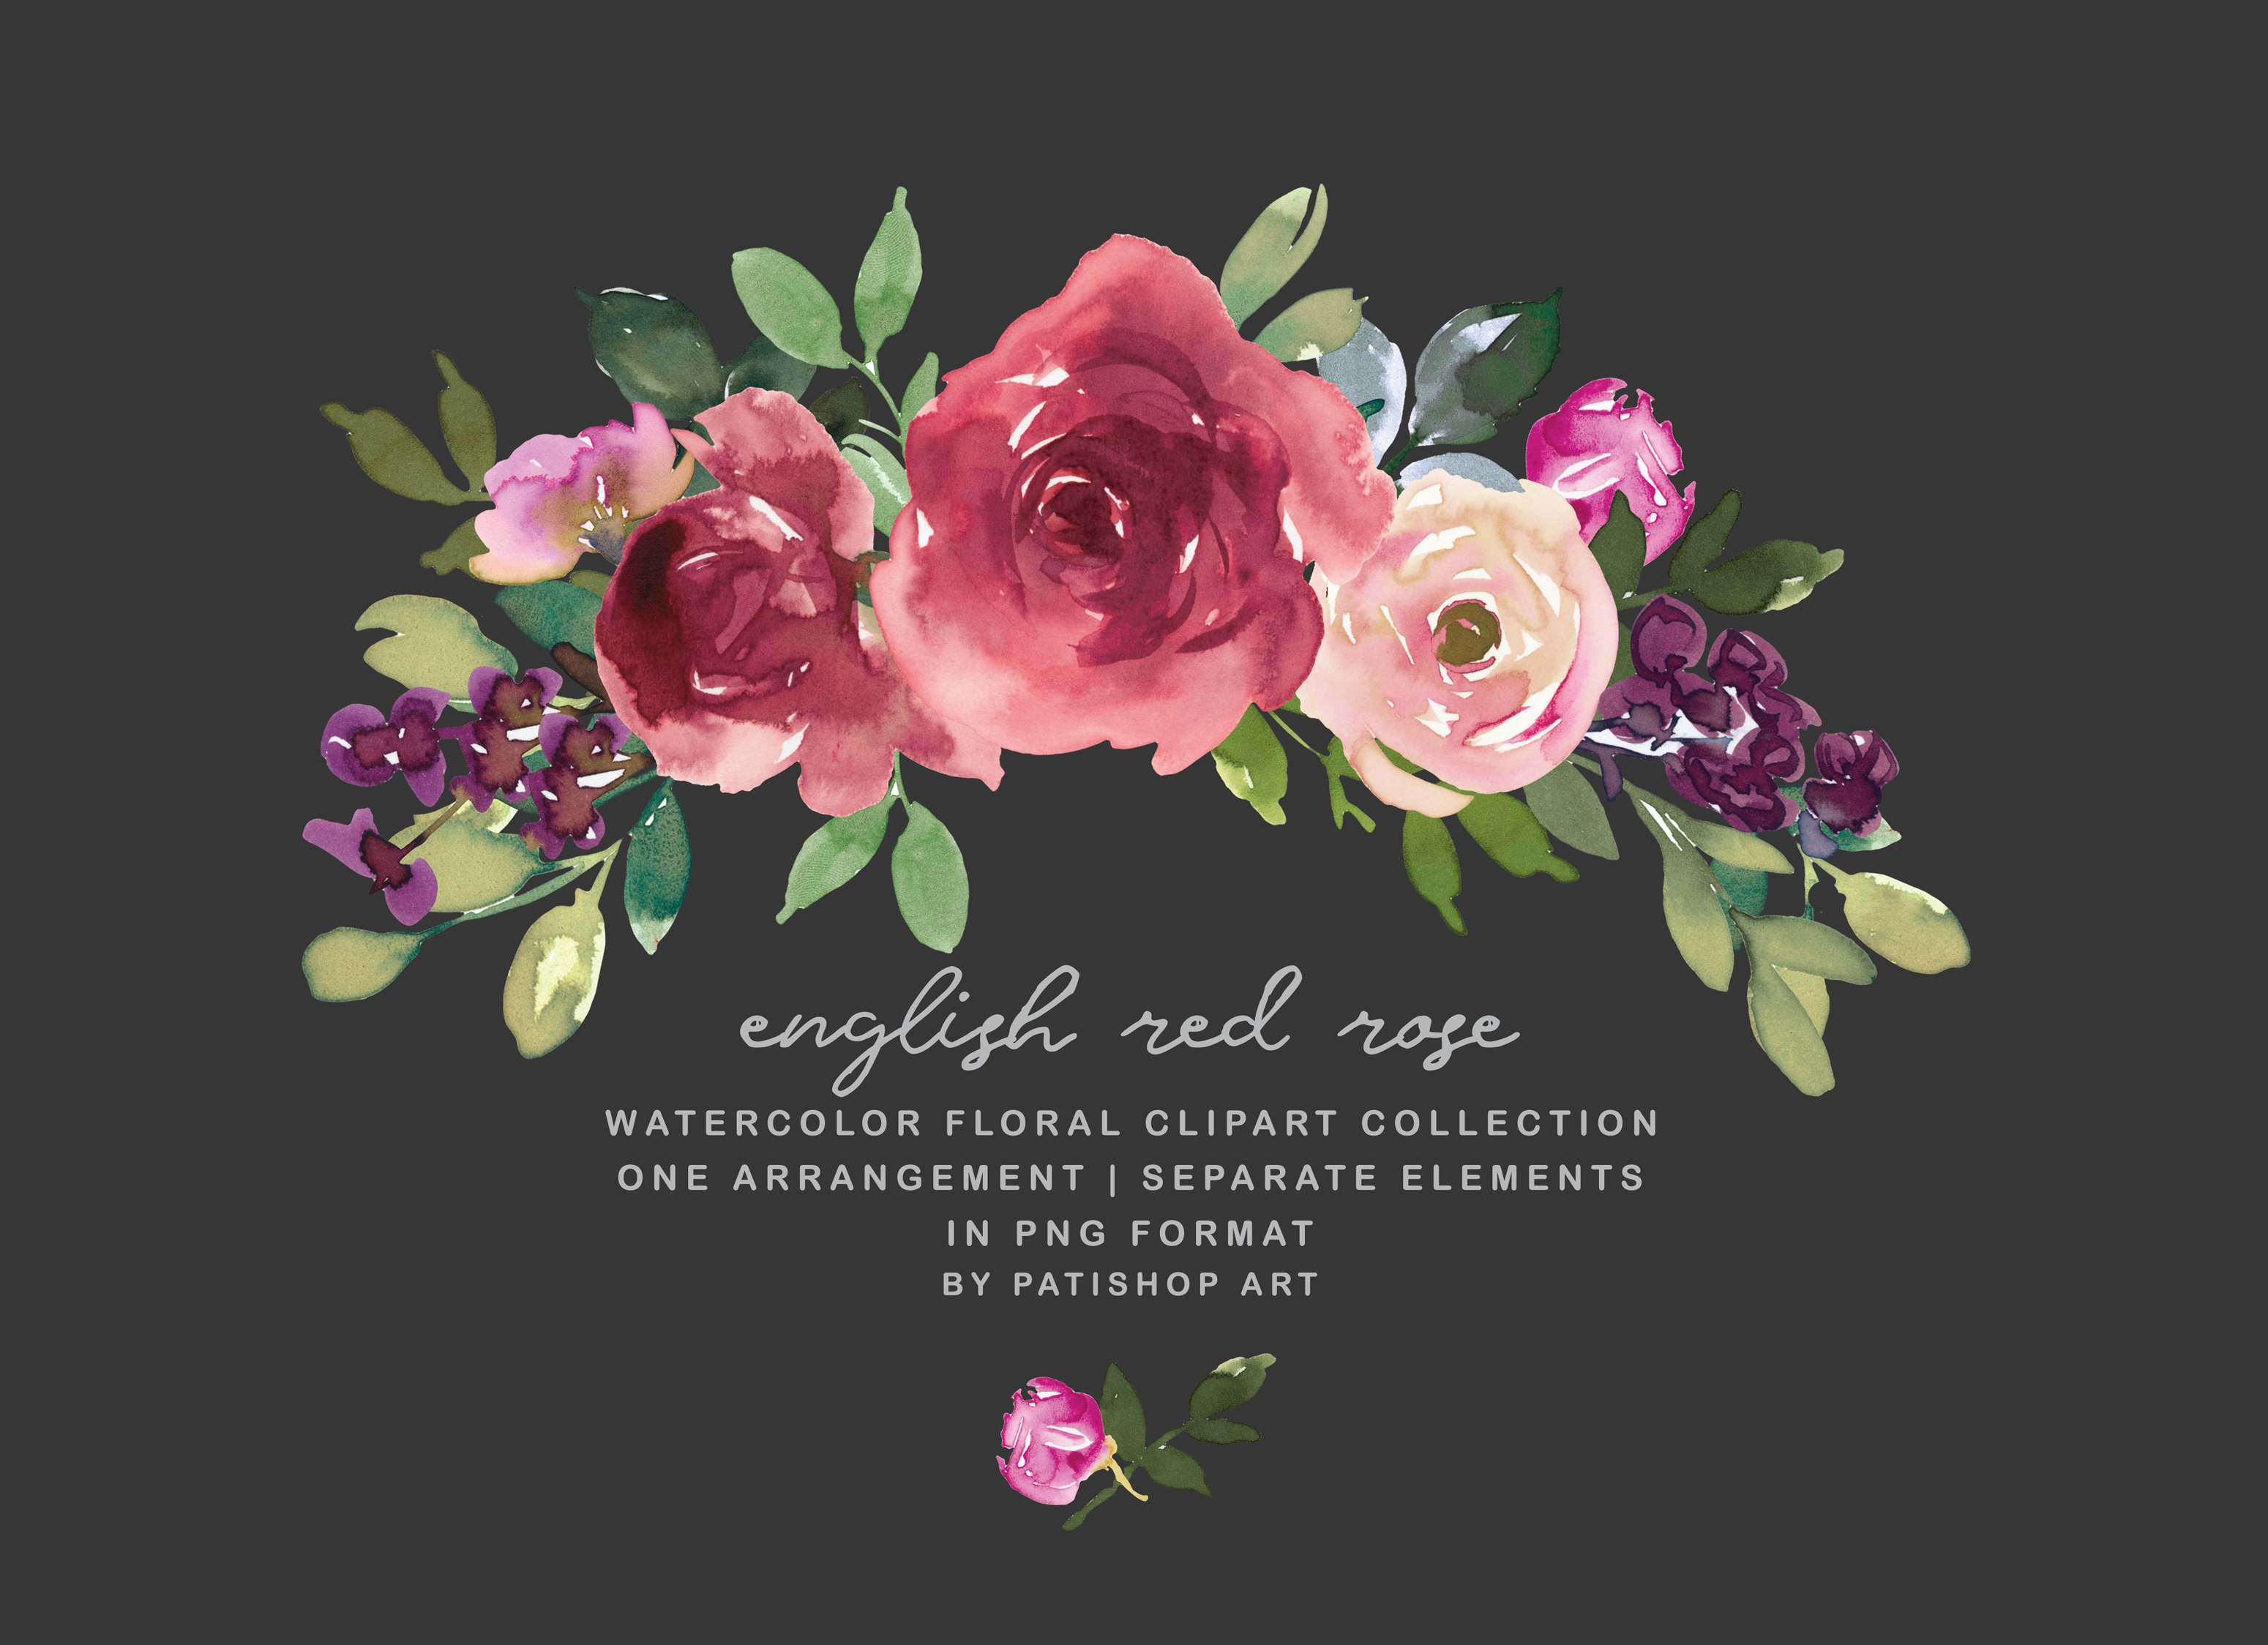 Download Free Red Rose Watercolor Floral Clipart Graphic By Patishop Art for Cricut Explore, Silhouette and other cutting machines.